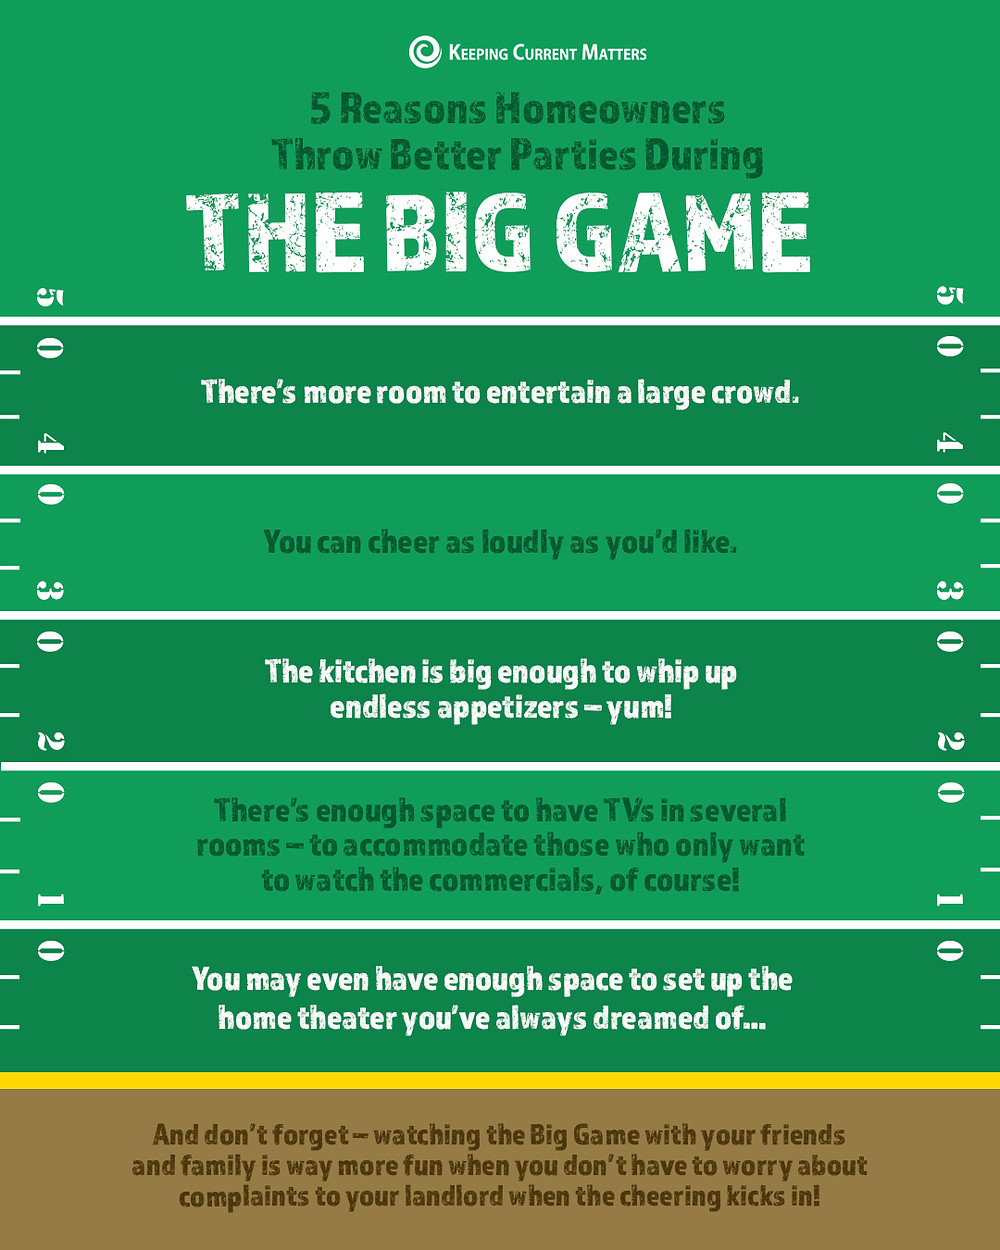 5 Reasons Homeowners Throw Better Parties During the Big Game [INFOGRAPHIC]   Keeping Current Matters